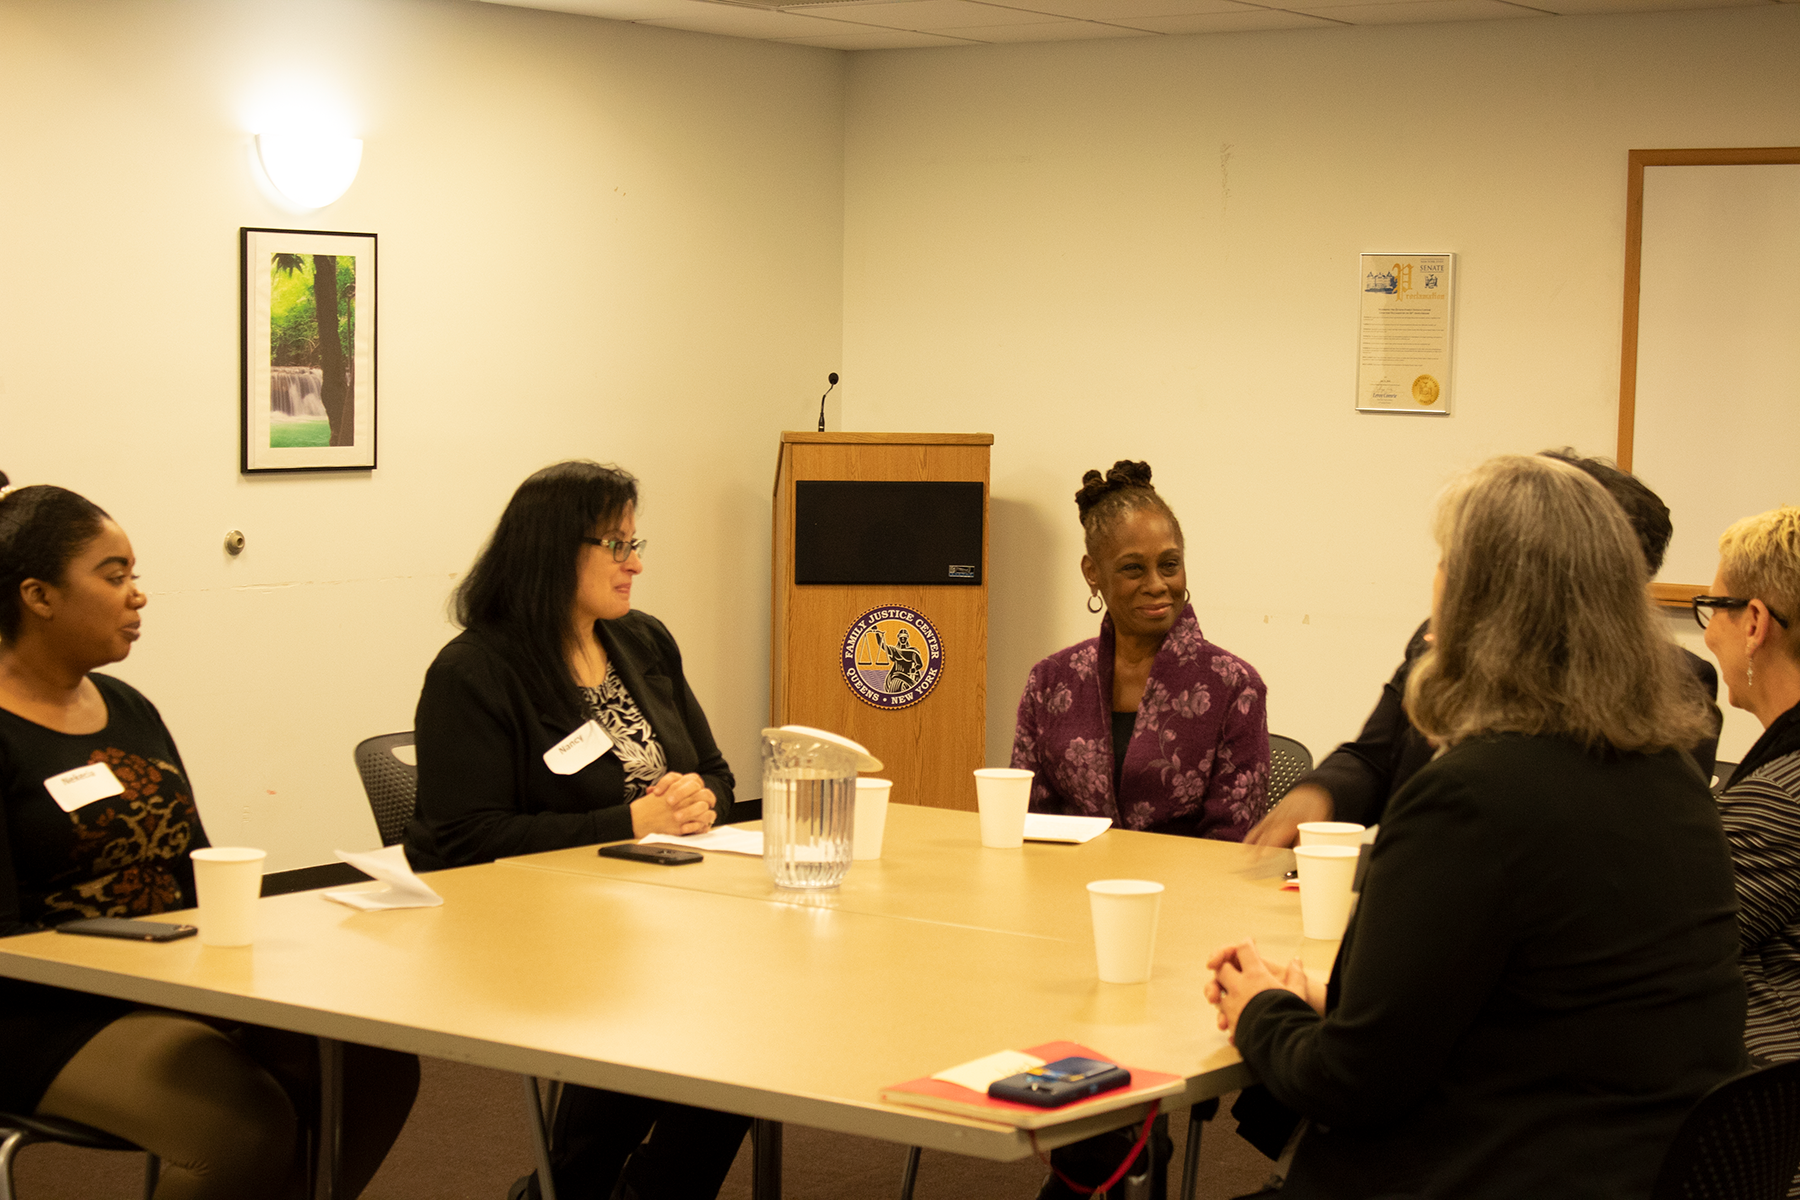 The Queens Family Justice Center began offering mental health services in 2017 with support from New York City First Lady Chirlane McCray's ThriveNYC mental health initiative.  Eagle  photo by Victoria Merlino.